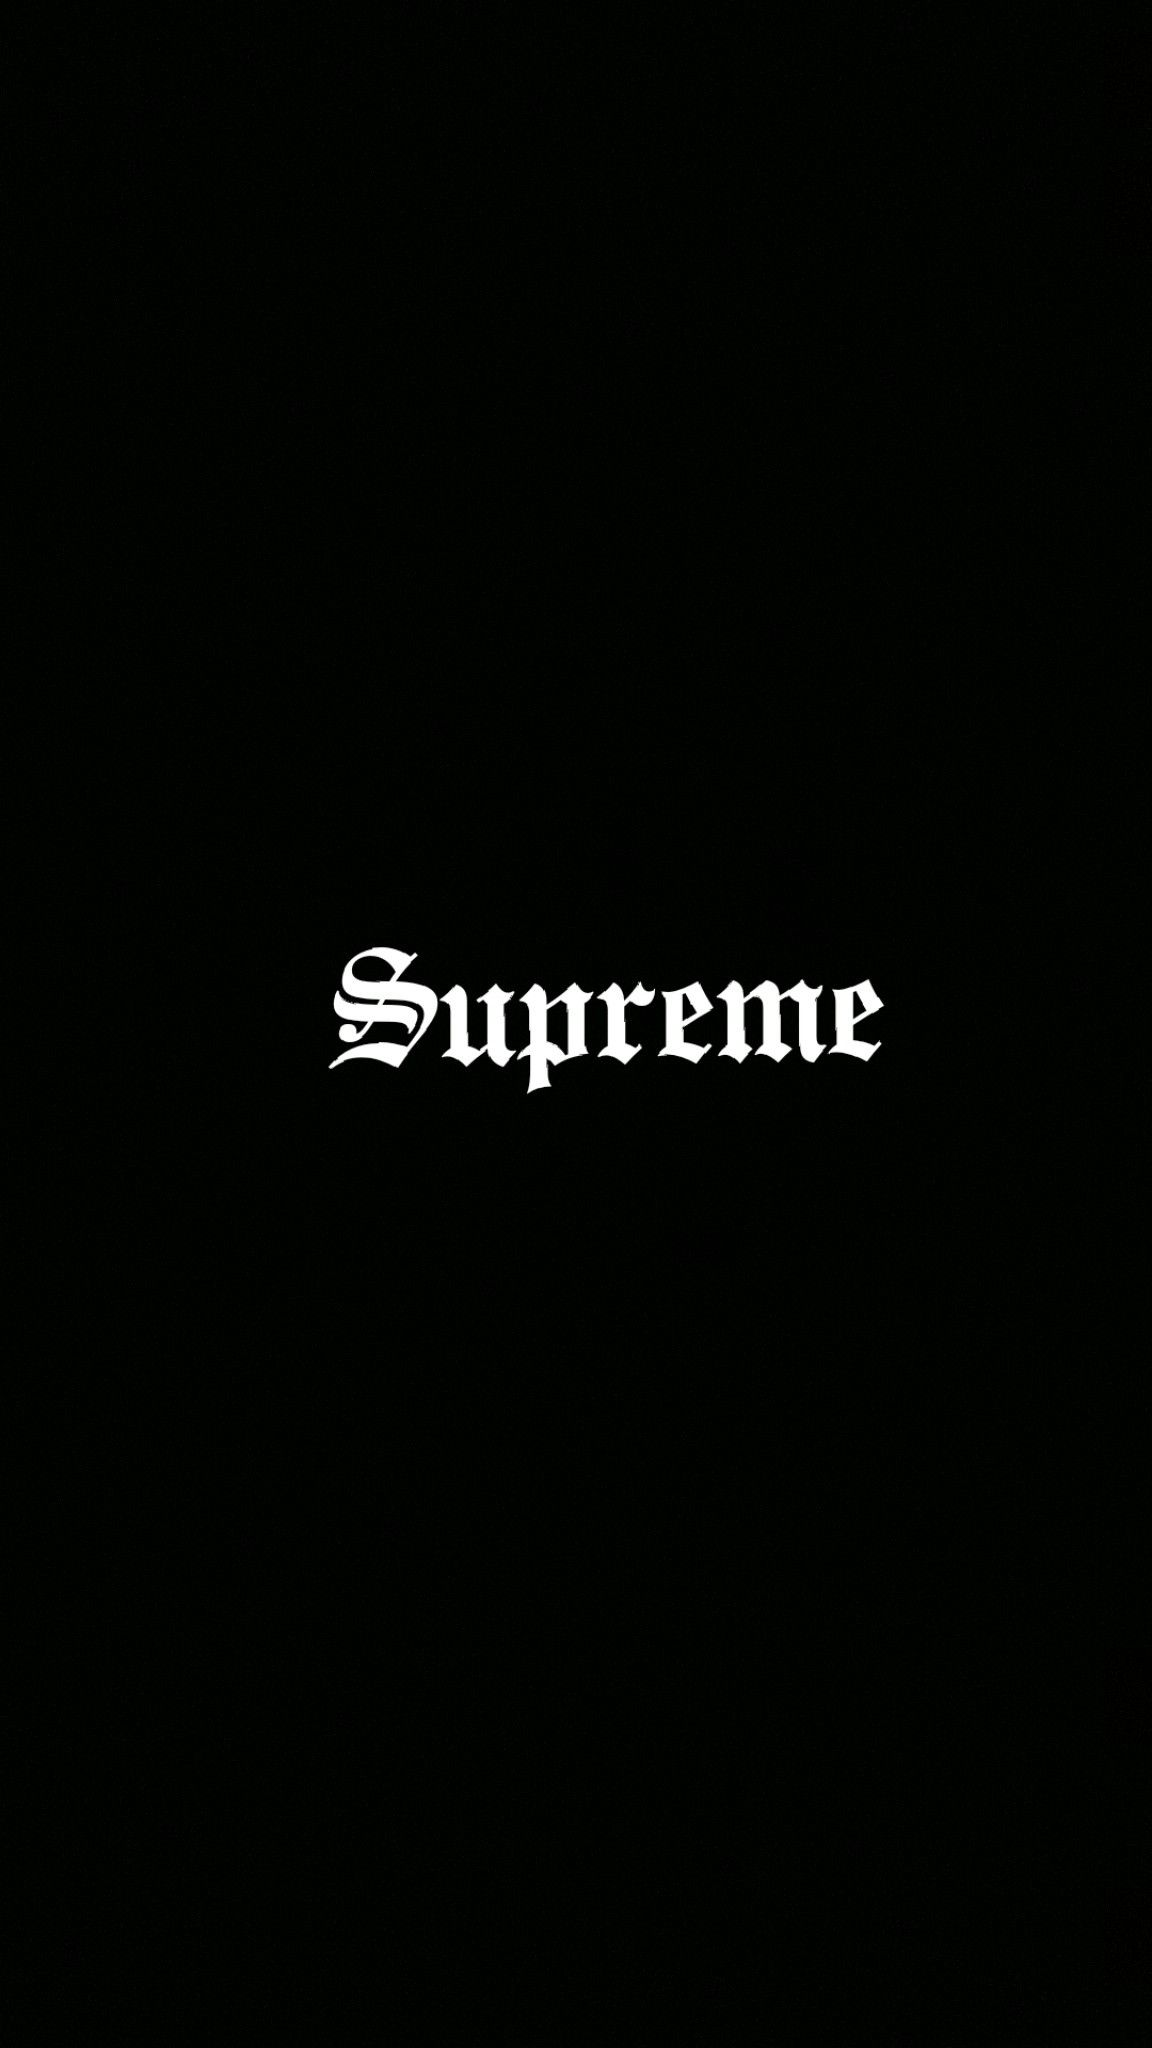 Hypebeast Wallpapers nixxboi Hypebeast Wallpapers in 2019 1152x2048